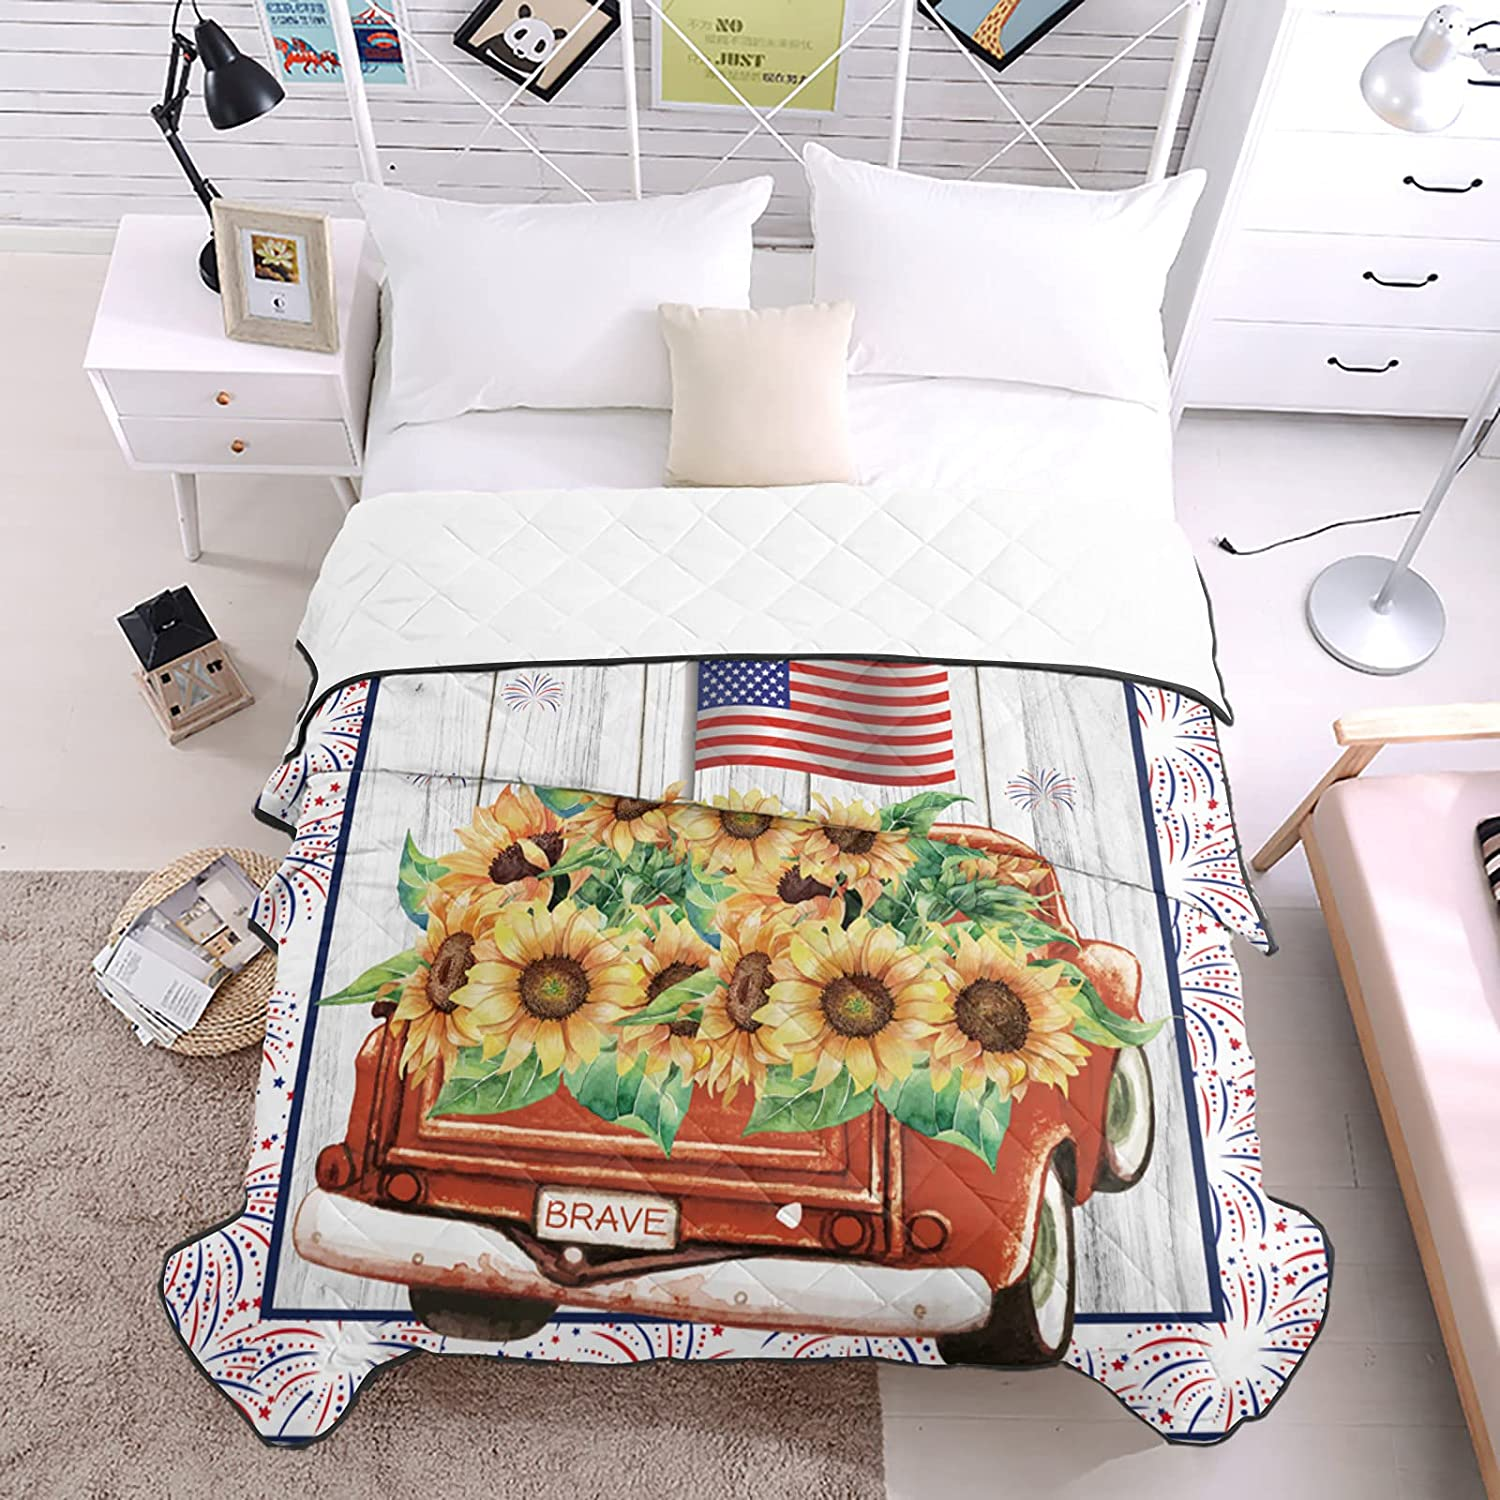 DecorLovee Bedding Duvets online shopping Red Trucks Loaded with Weekly update Flowers Sunflo